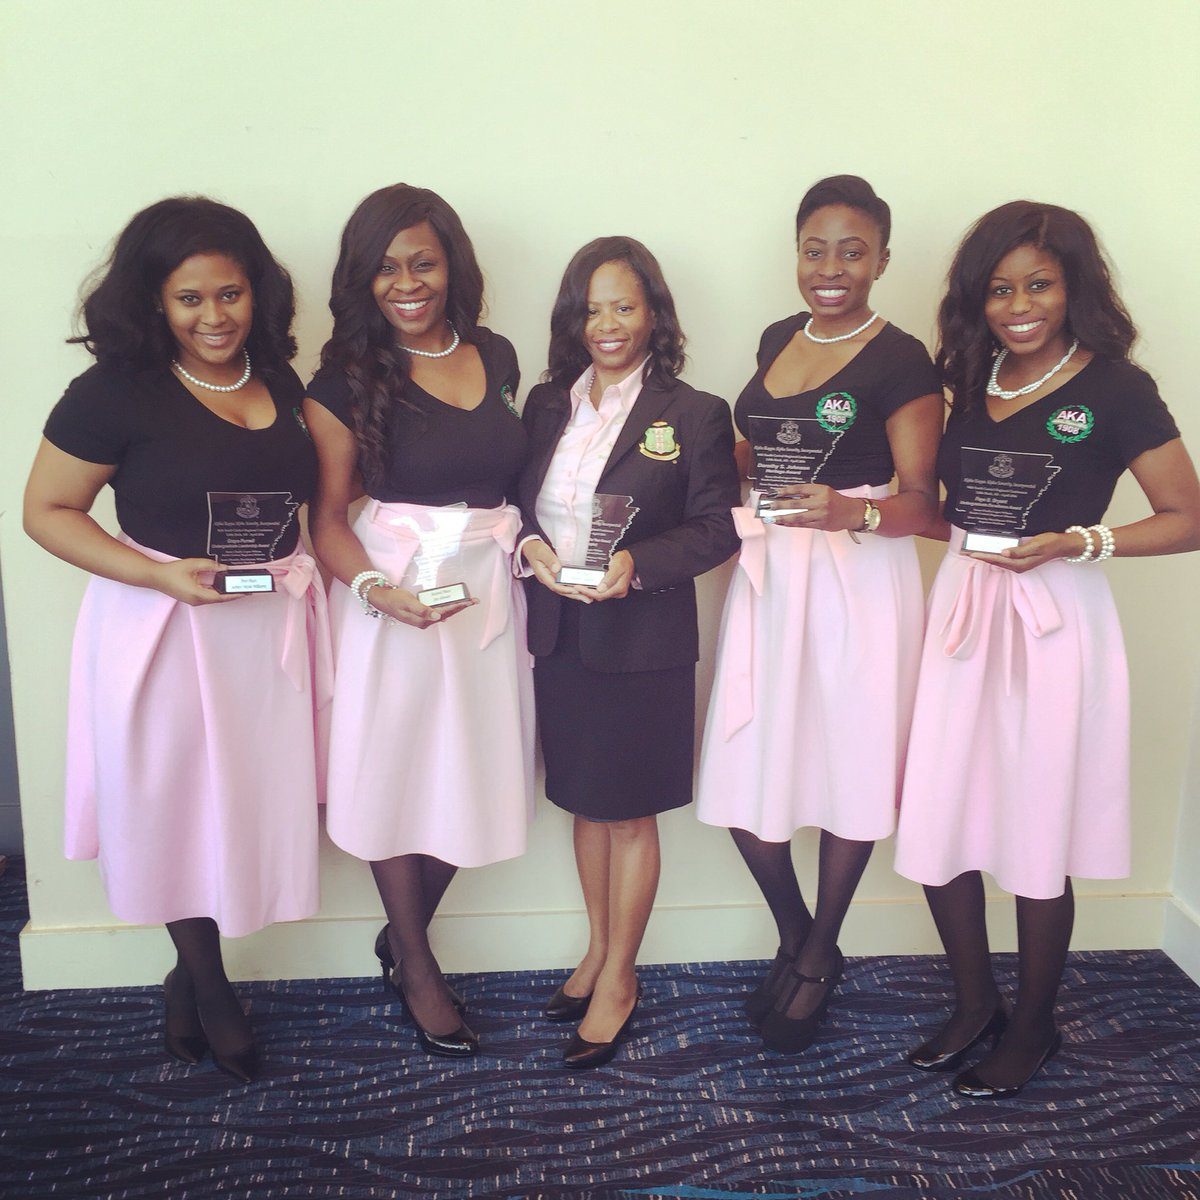 Delta Xi wins Undergraduate Chapter of the Year for the 6th time! In addition to the Individual Awards won